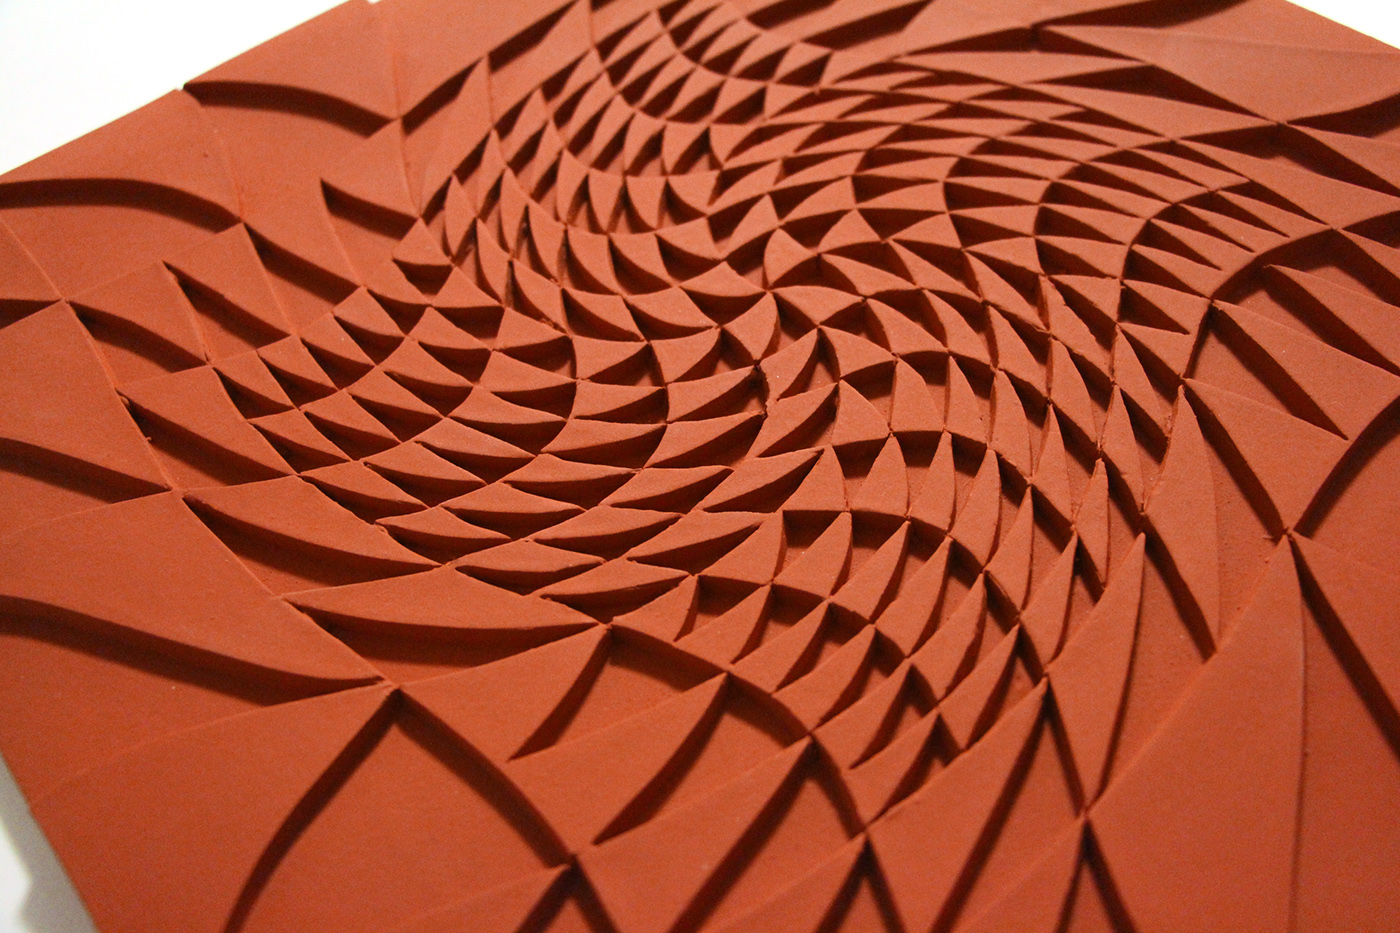 Check out these beautiful hand-cut ceramic tiles